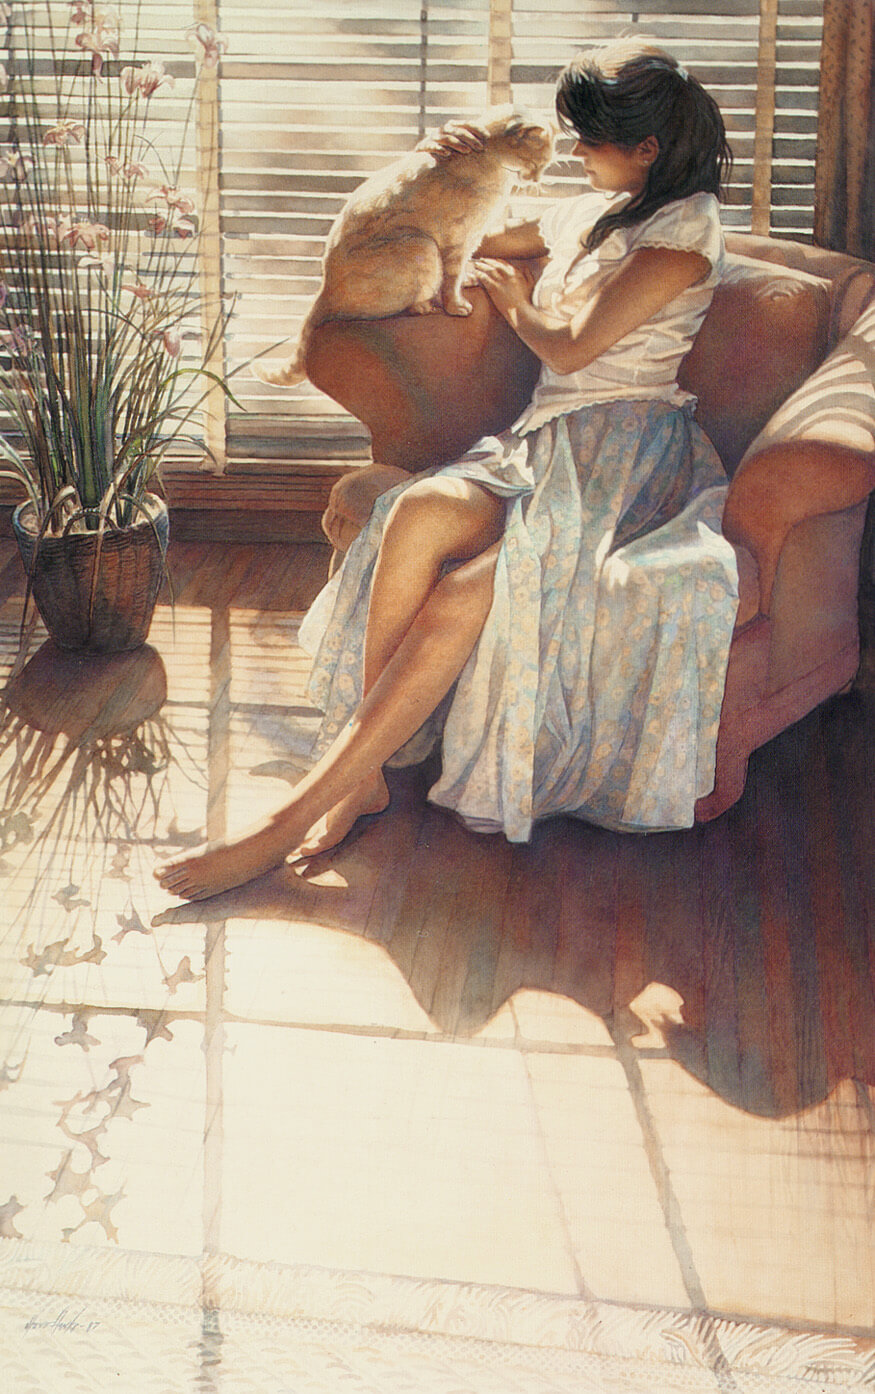 Ashley and Clyde, by Traditional Artist Steve Hanks